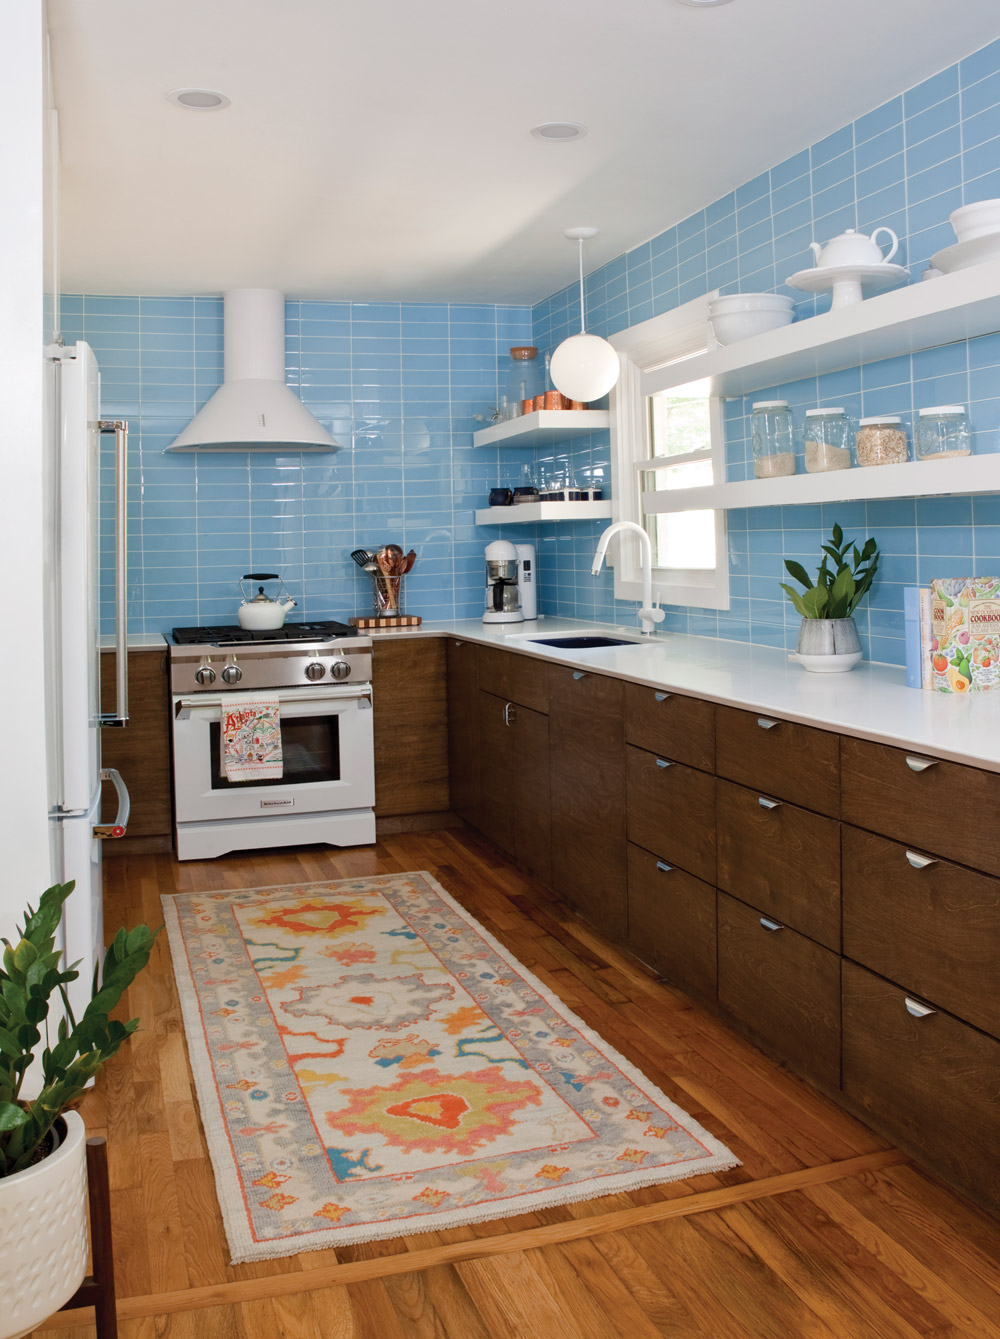 A quaint kitchen with blue tile, white countertops, and dark brown wood drawers